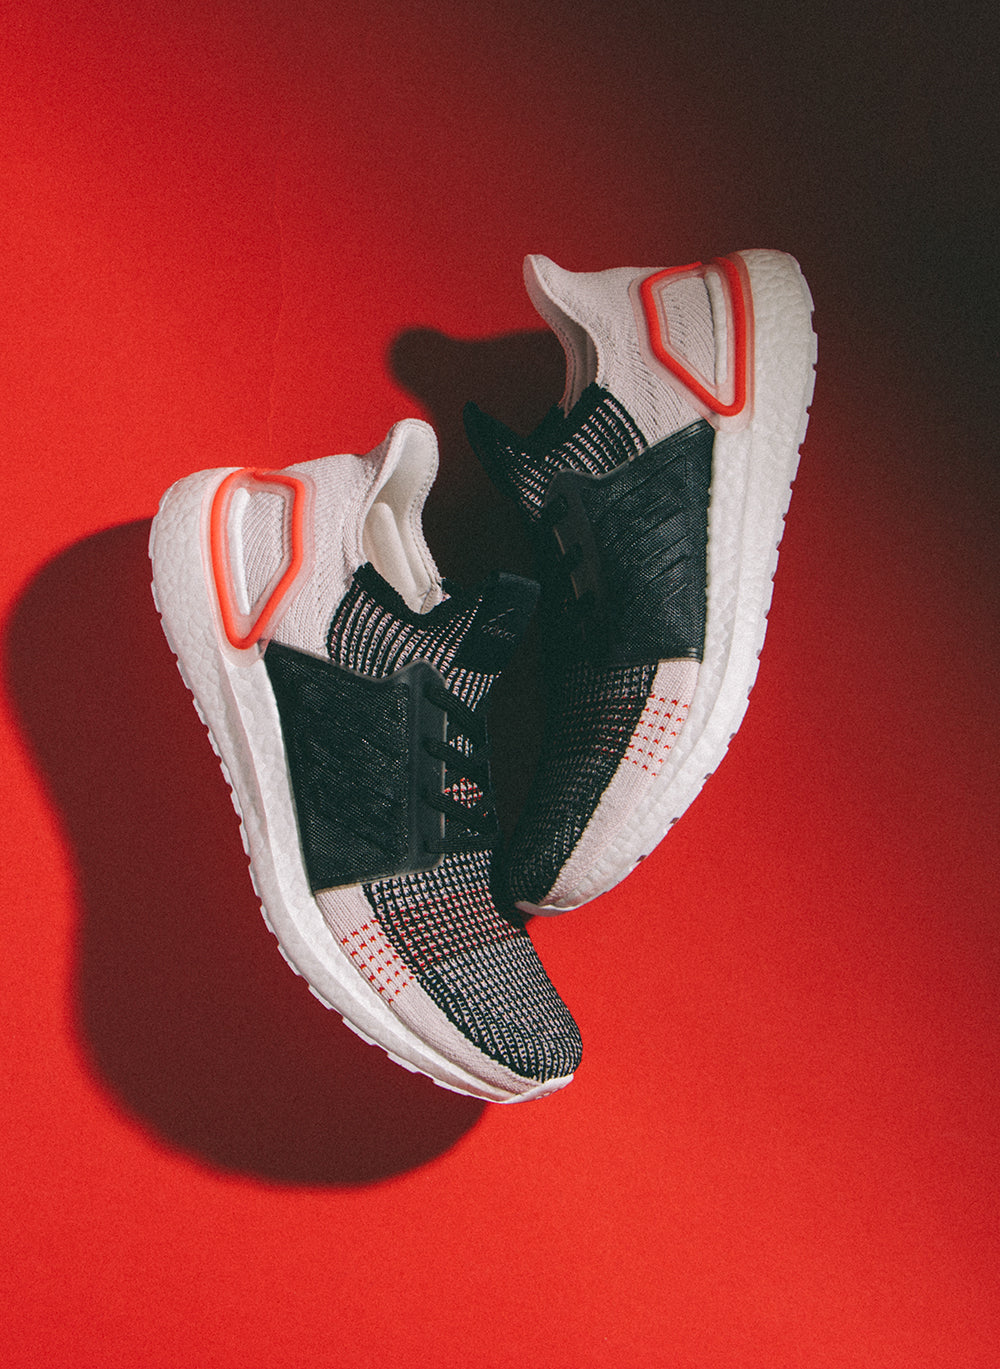 adidas Ultraboost 19 Core Black / Orchid Tint